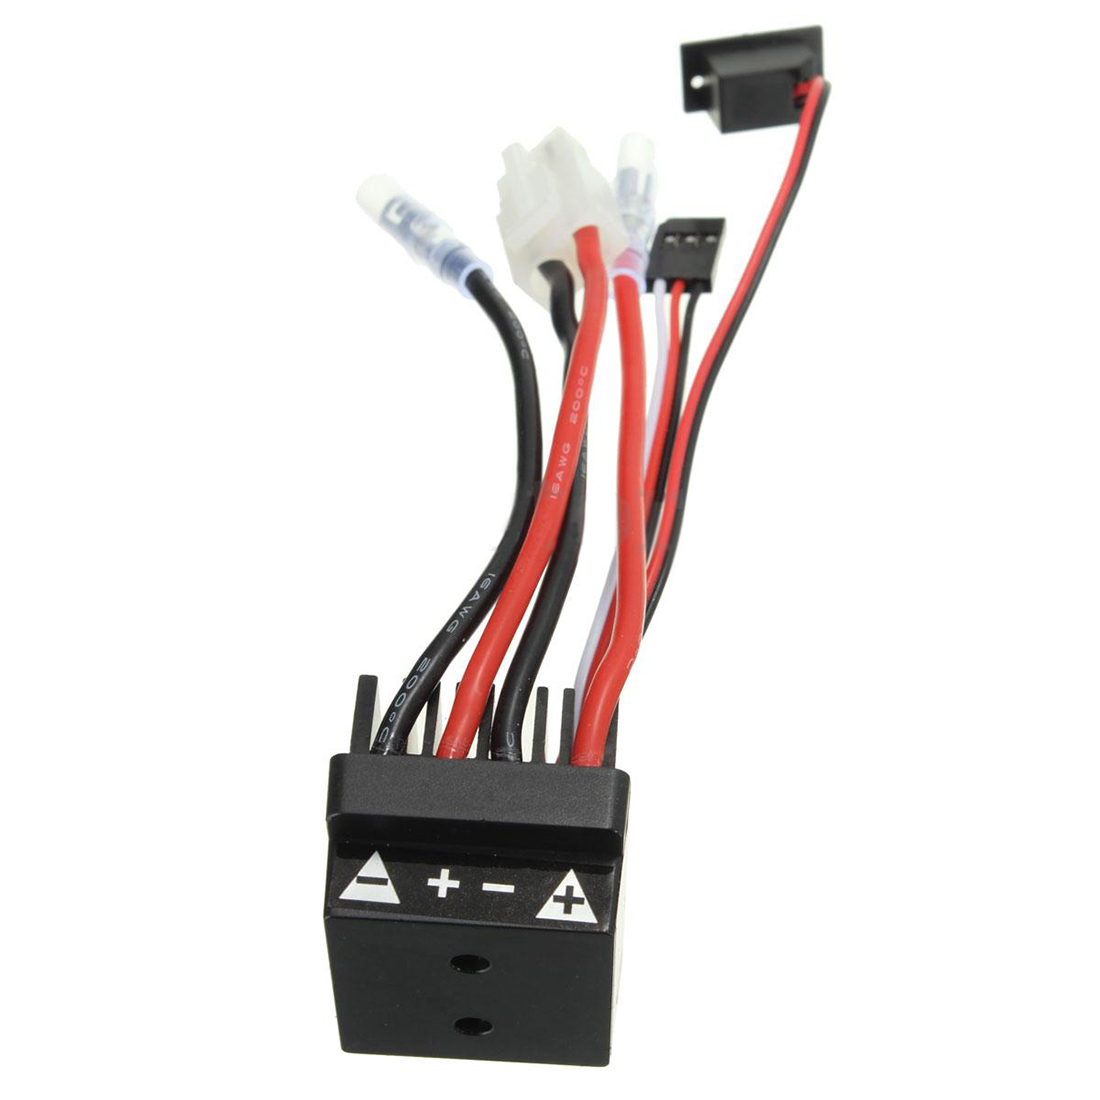 MACH HSP 320A Brushed Brush Motor Speed Controller ESC F. 1/10 1/12 RC Truck Car Boat 320a brushed motor speed controller esc for rc car ship